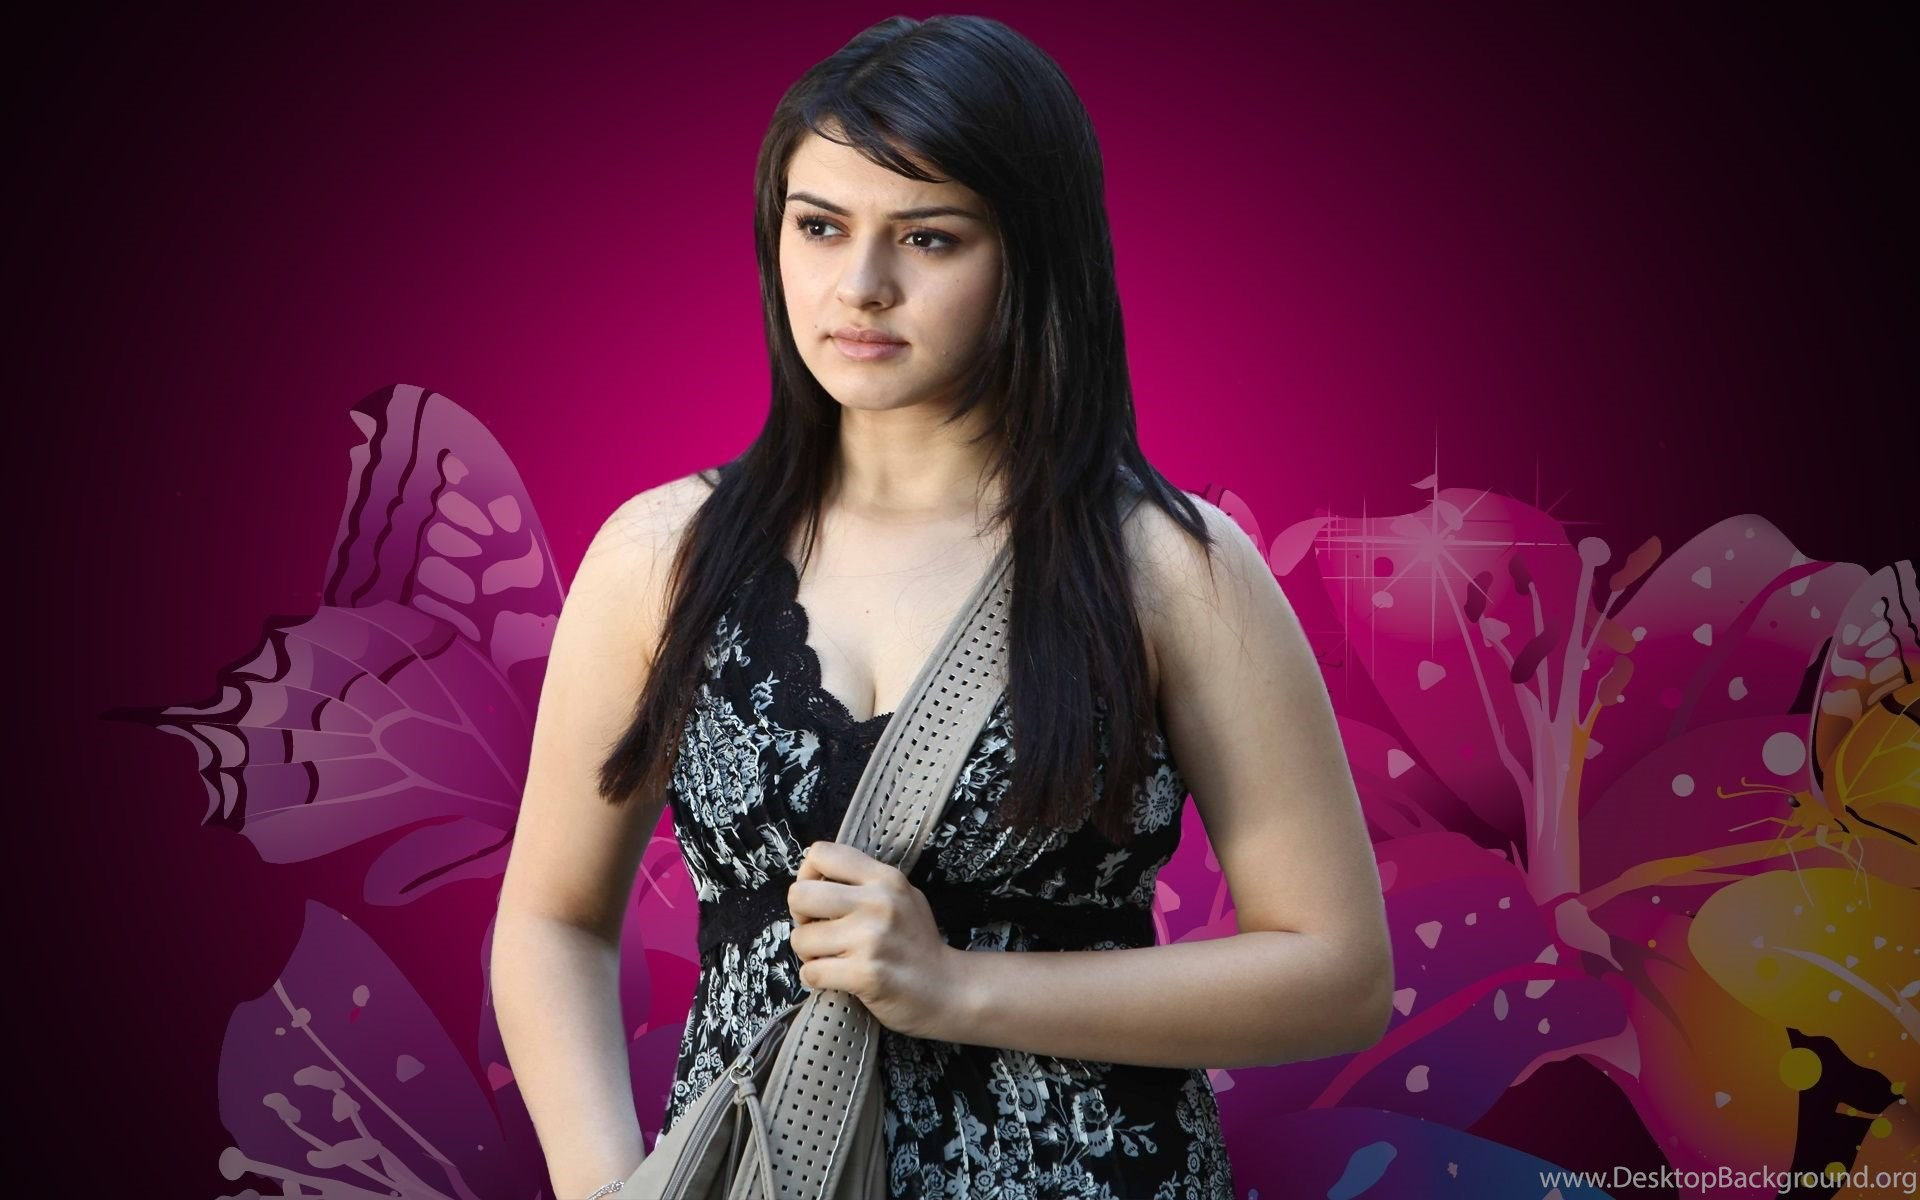 hansika motwani hot new hd wallpapers desktop background